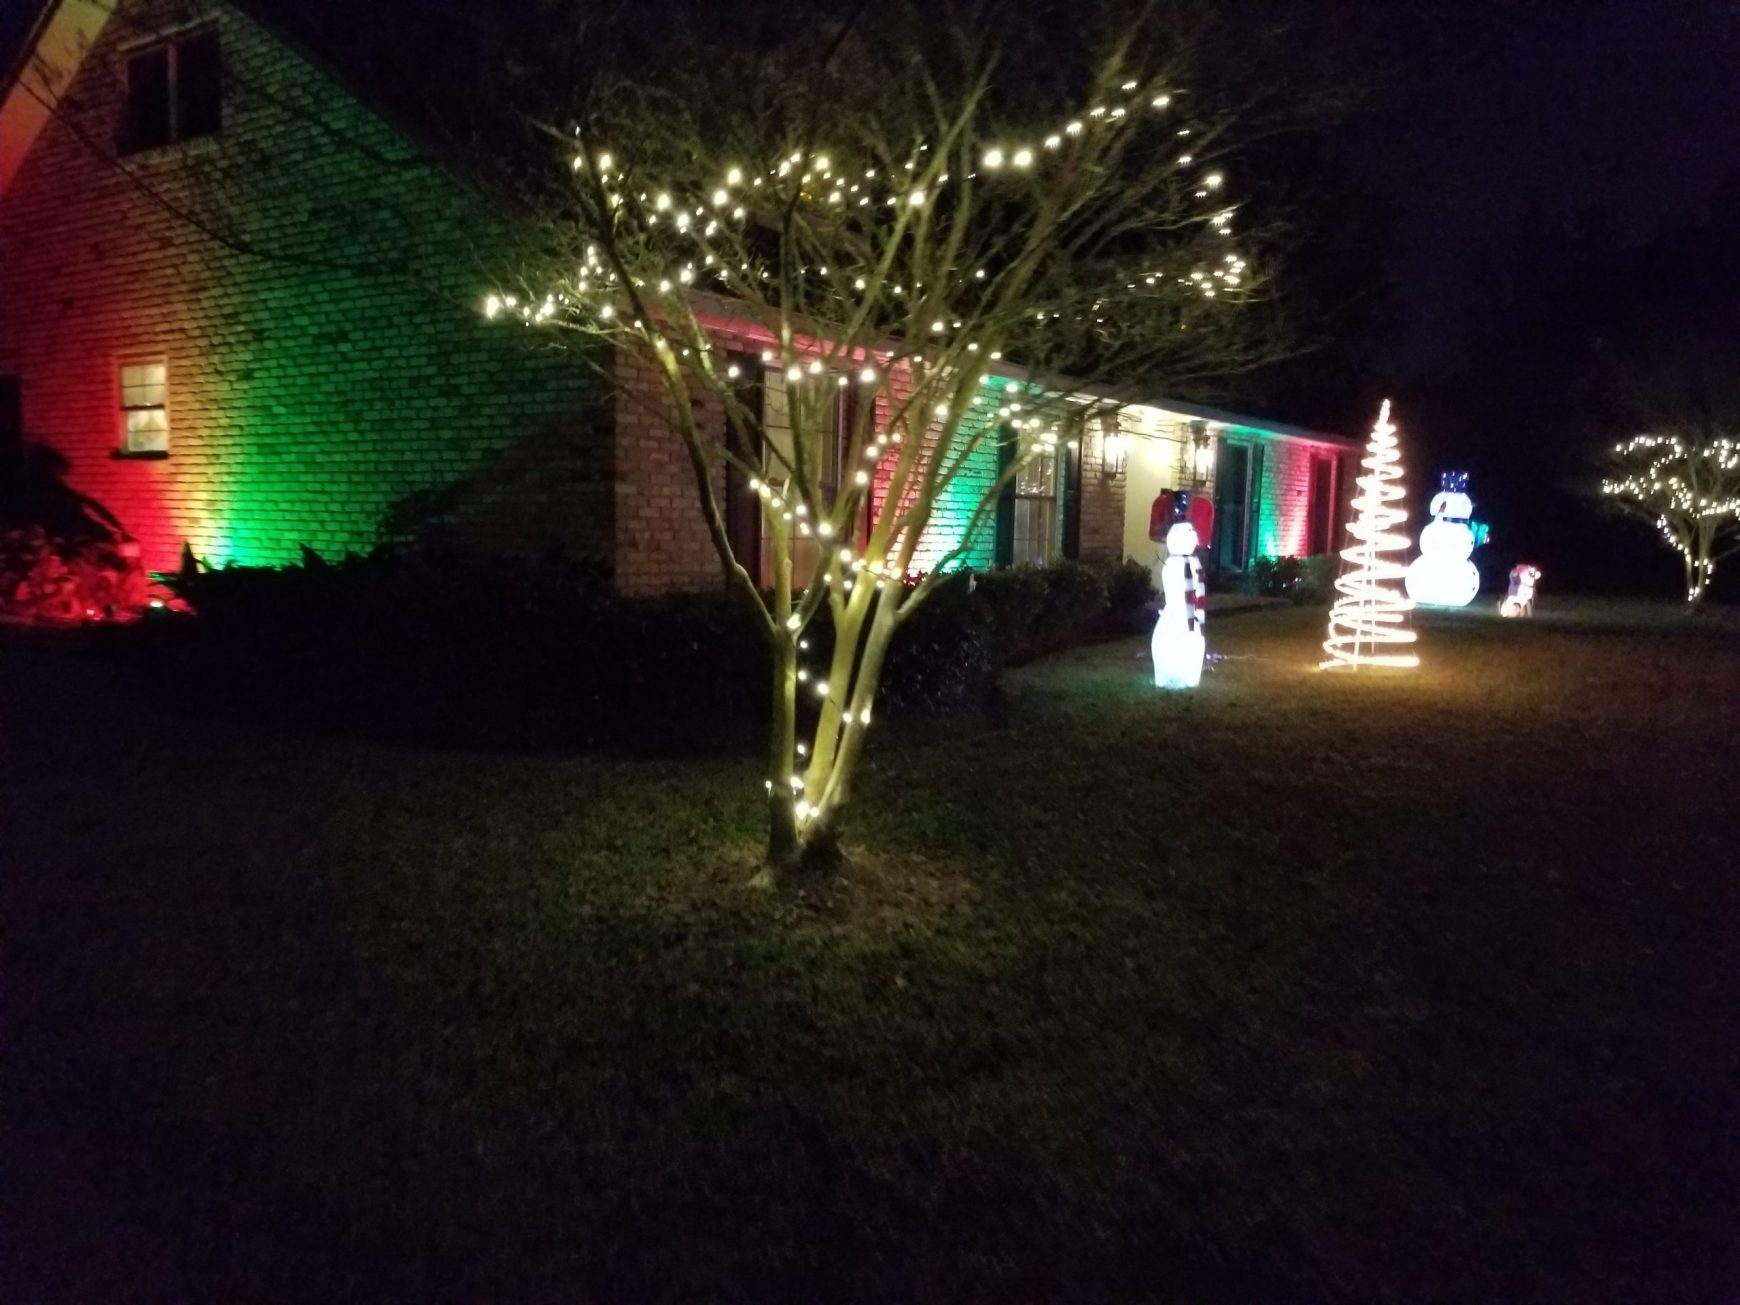 LISTEN: The 2nd Best Christmas Decorations